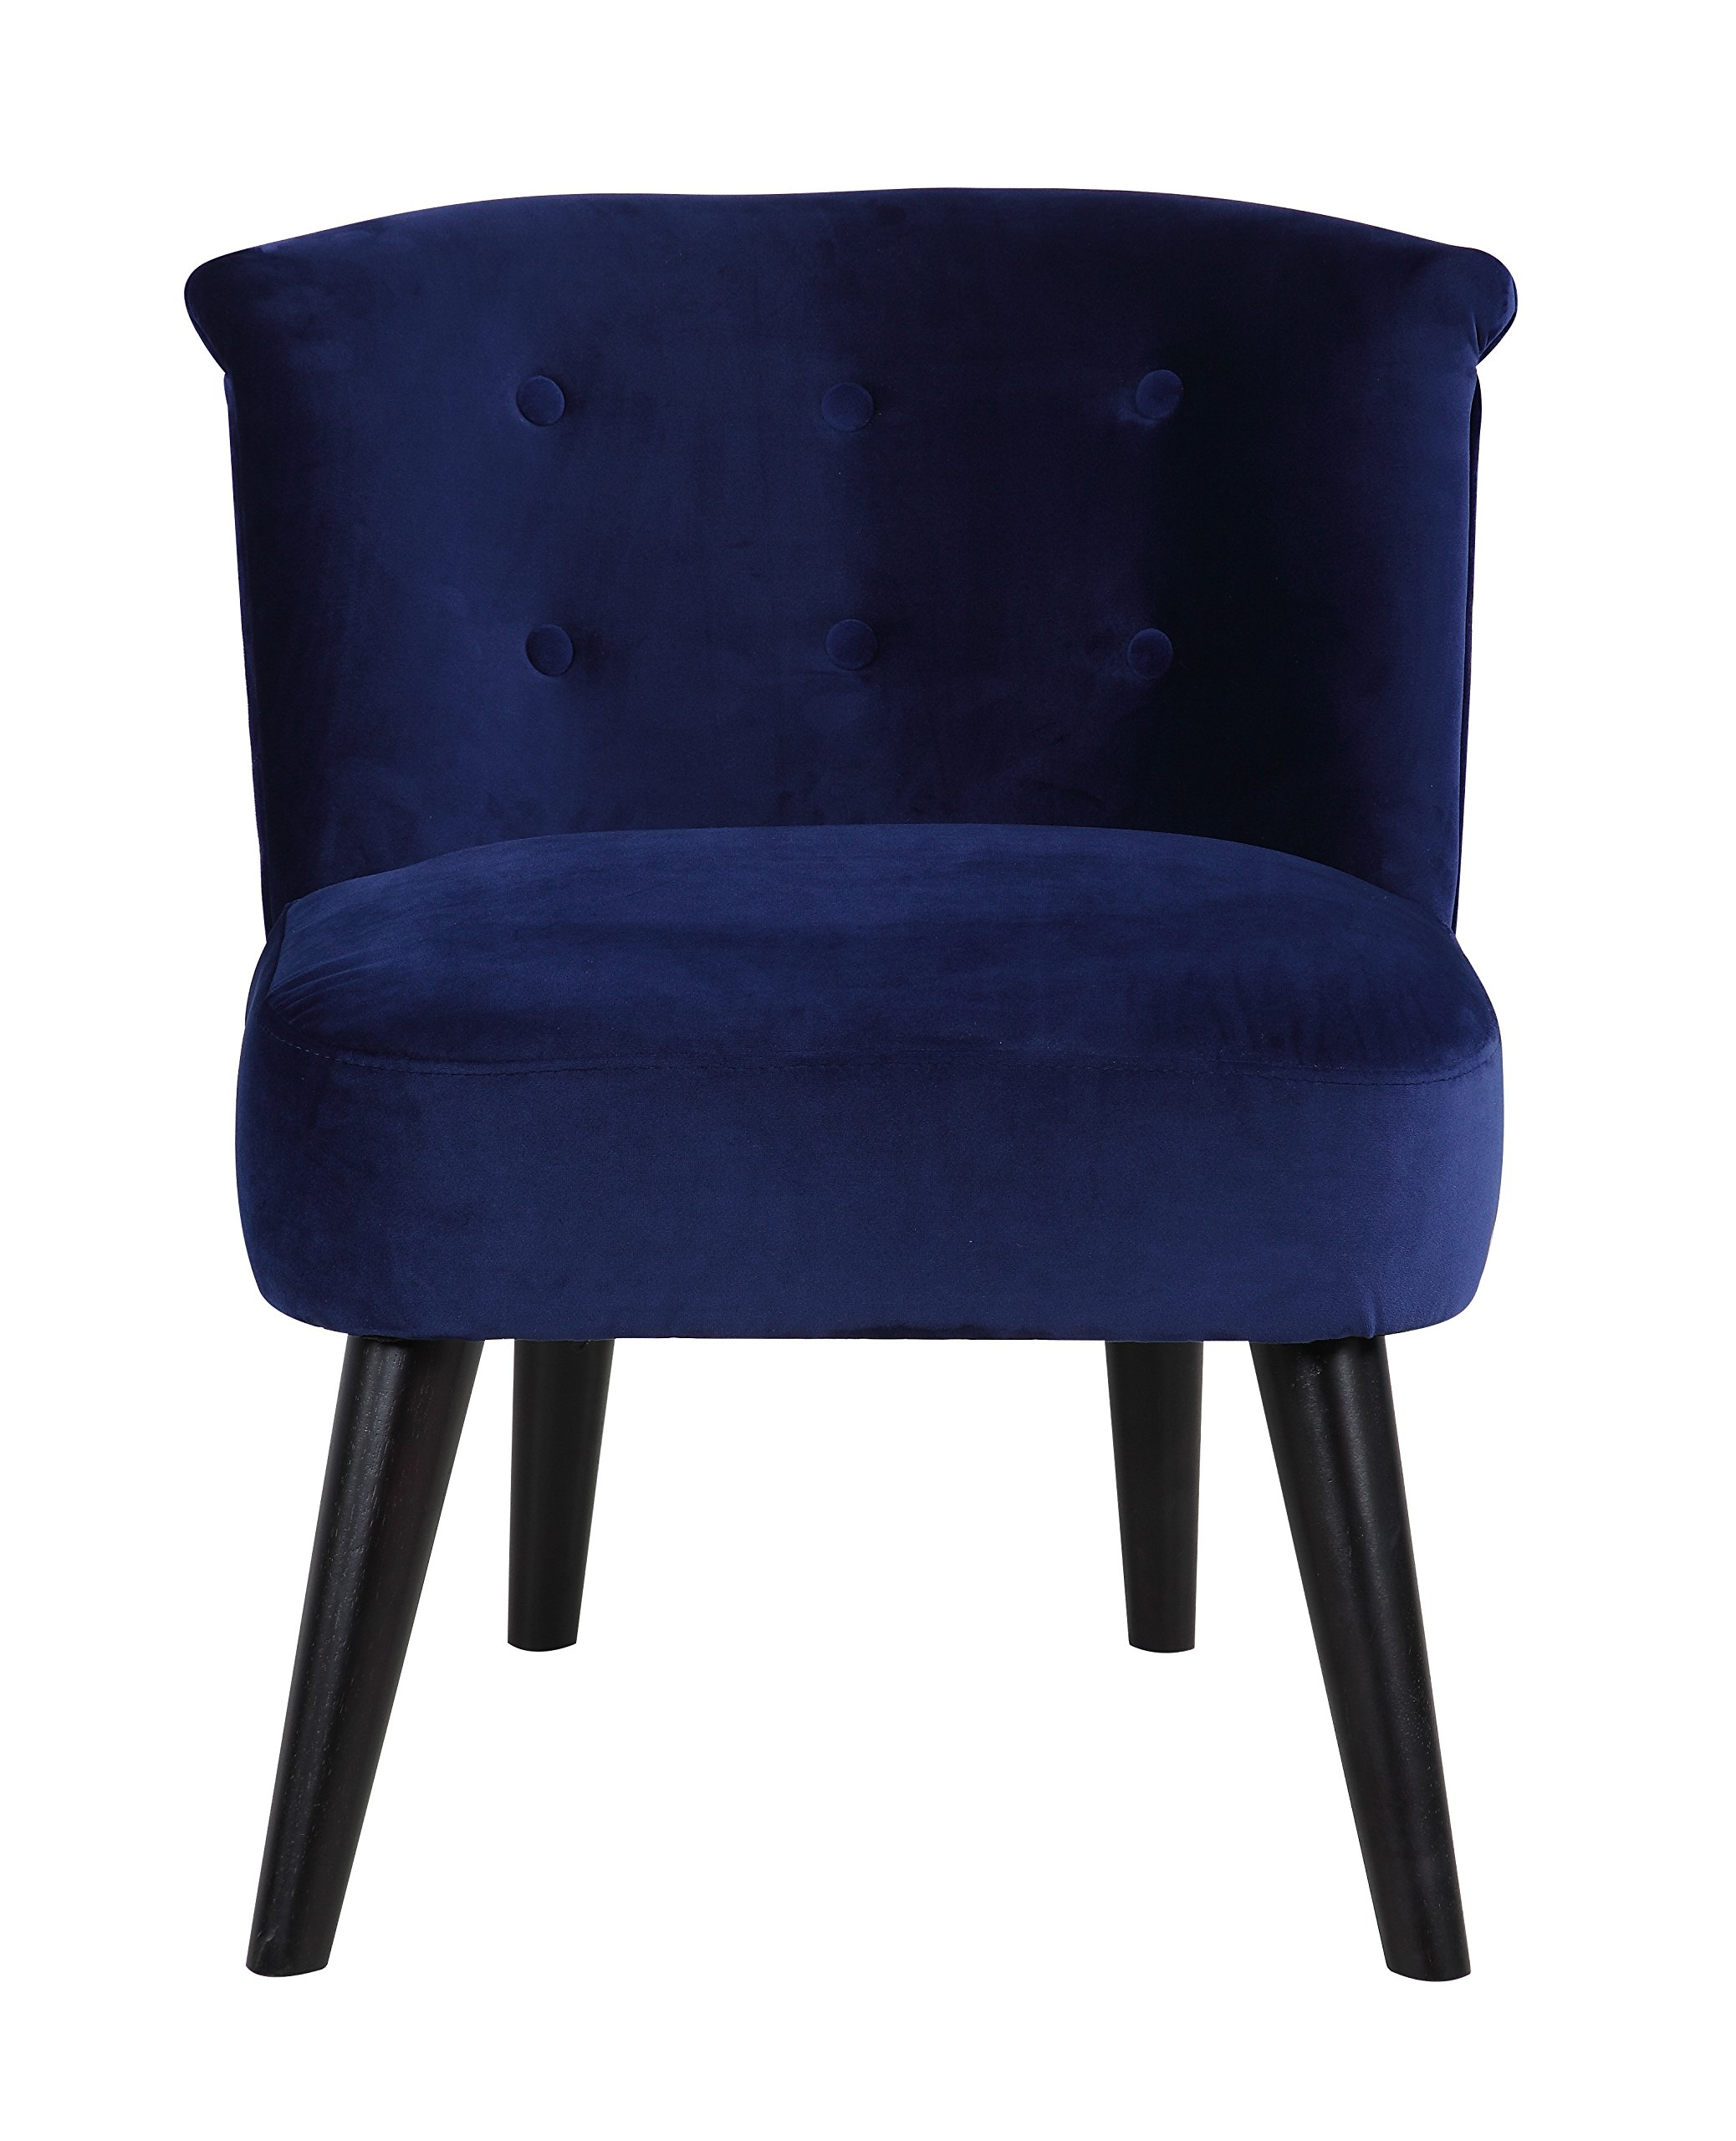 Divano Roma Furniture Classic and Traditional Living Room Velvet Fabric Accent Chair with Tufted Details (Navy) - Classic and traditional style accent chair with tufted button details Soft and durable velvet upholstery with pleated back rest details Simple and clean design with dark wooden legs to compliment the rest of your home decor - living-room-furniture, living-room, accent-chairs - 81jy46JE3NL -